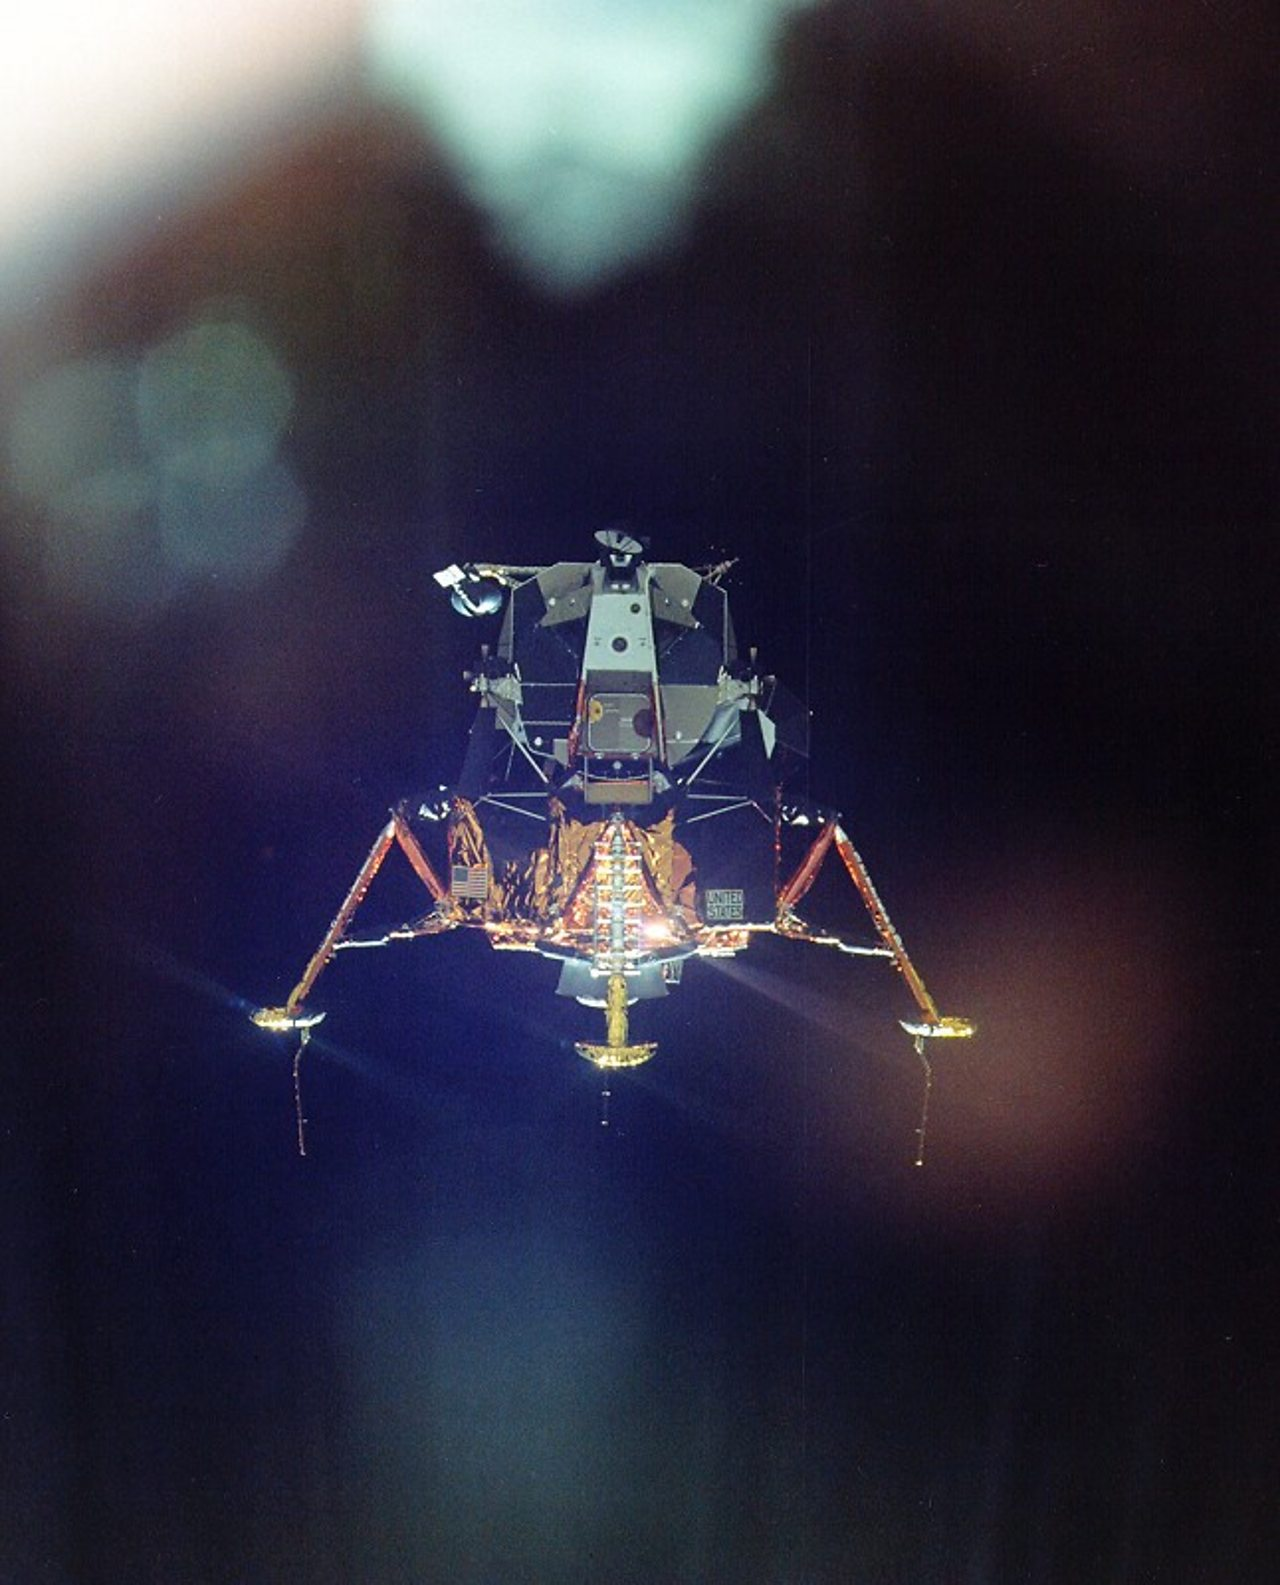 The Lunar Module heading for the Moon.